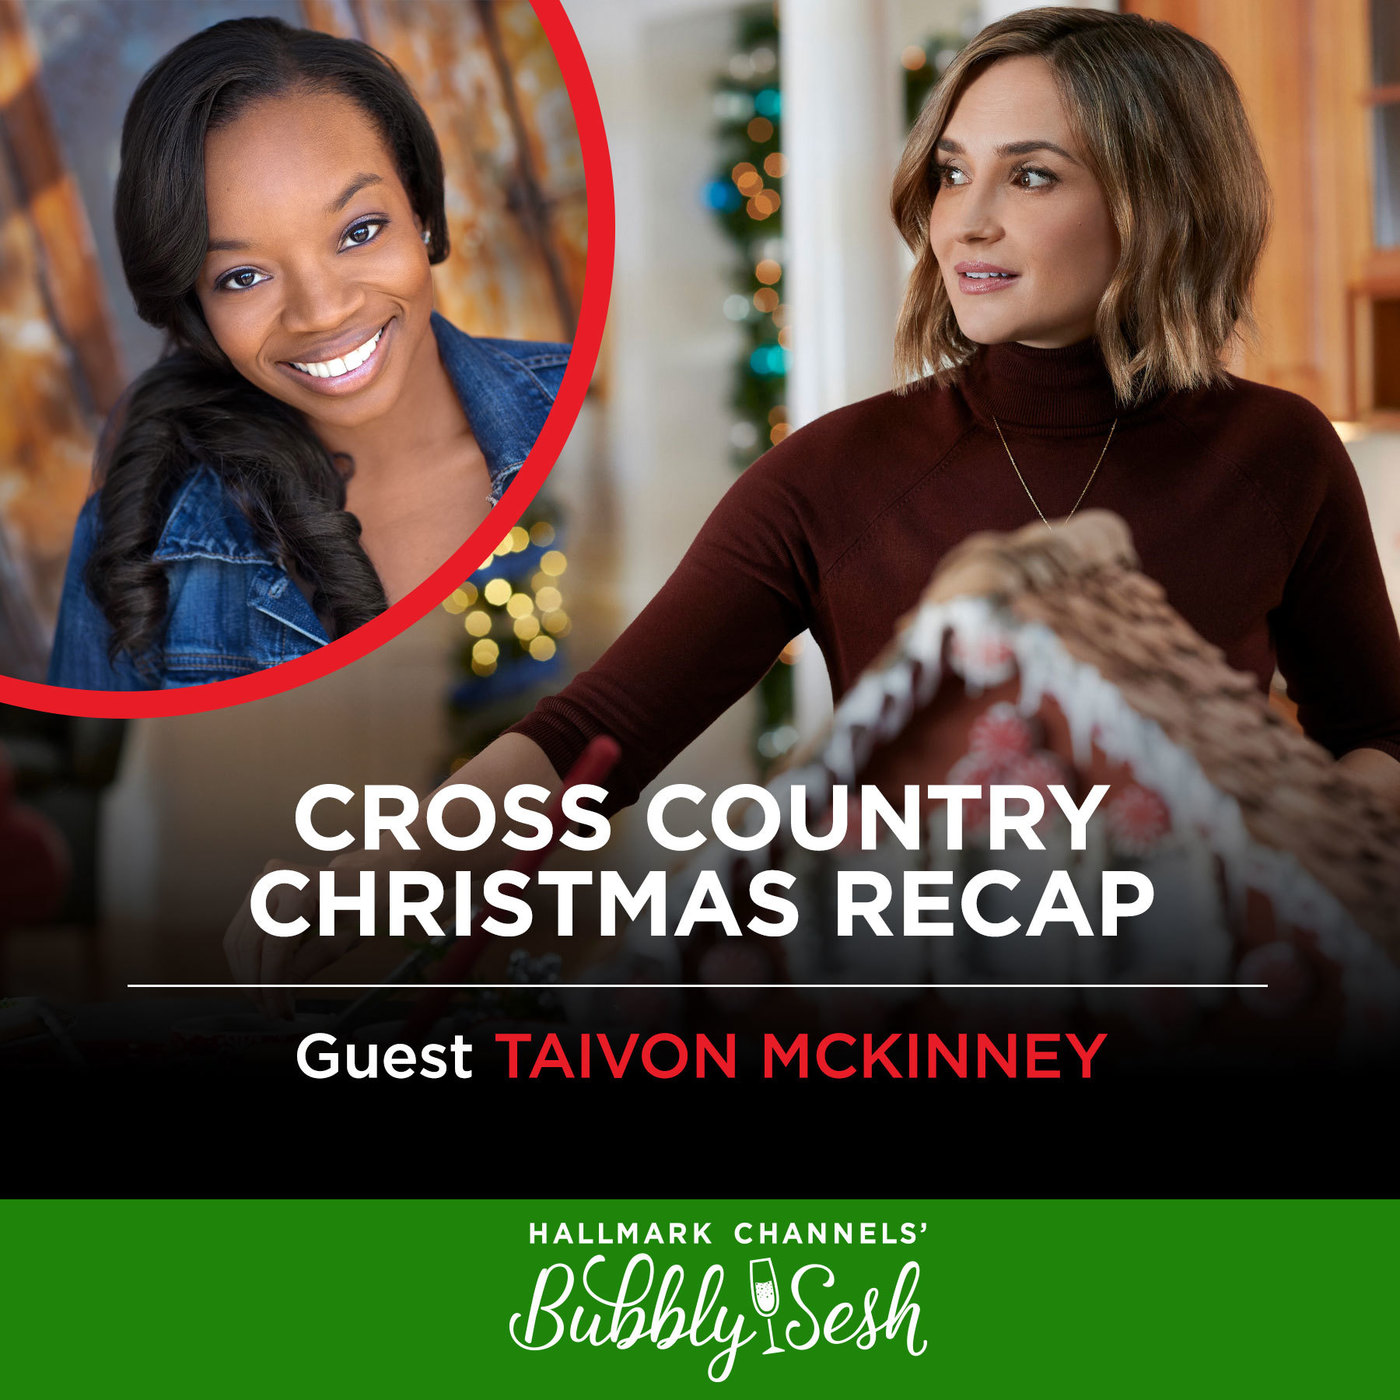 Cross Country Christmas with Guest Taivon McKinney